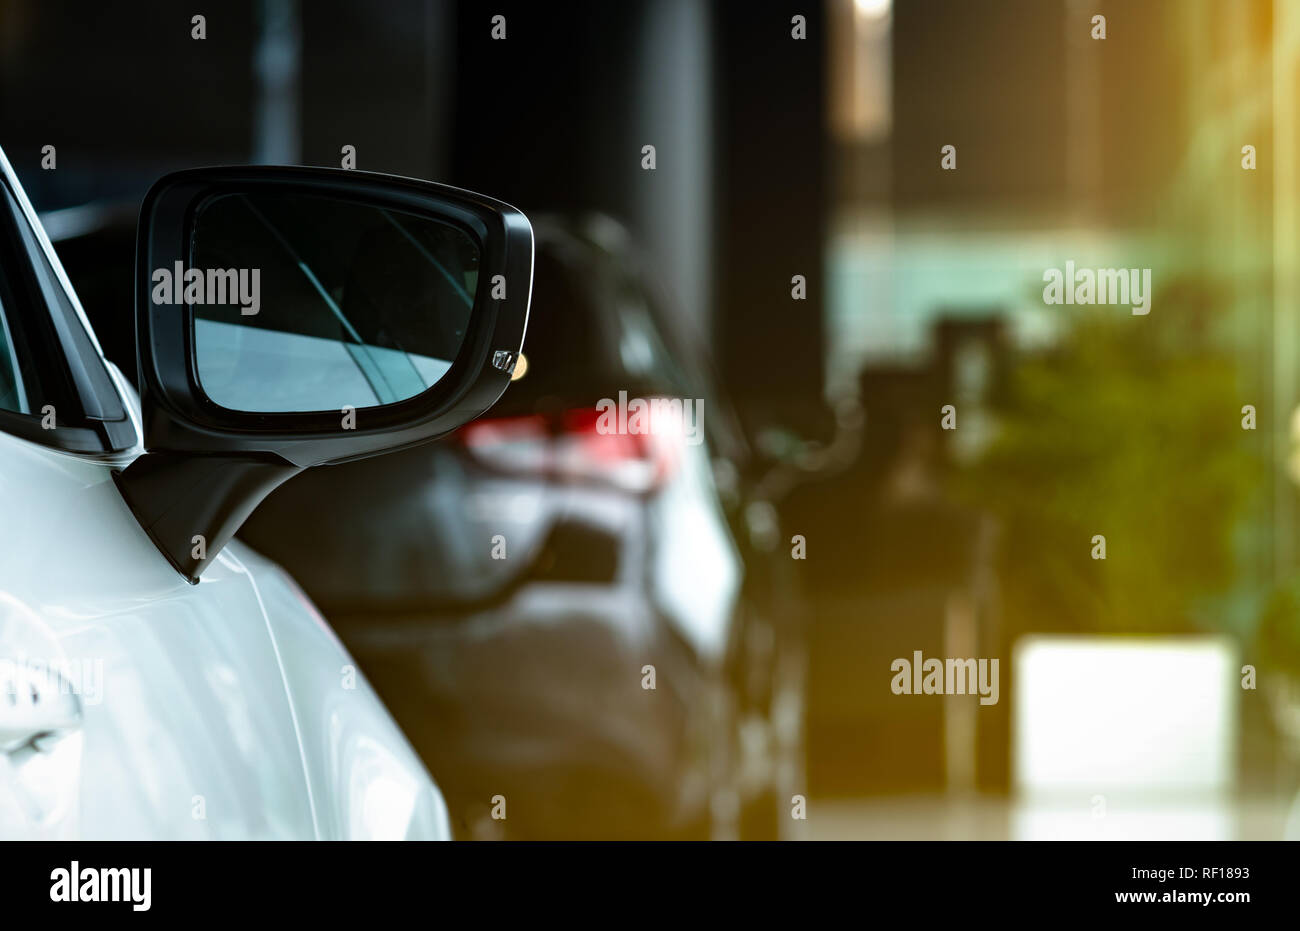 New luxury SUV compact car parked in modern showroom. Car dealership office. Car retail shop. Electric and hybrid car technology. Automobile rental co - Stock Image